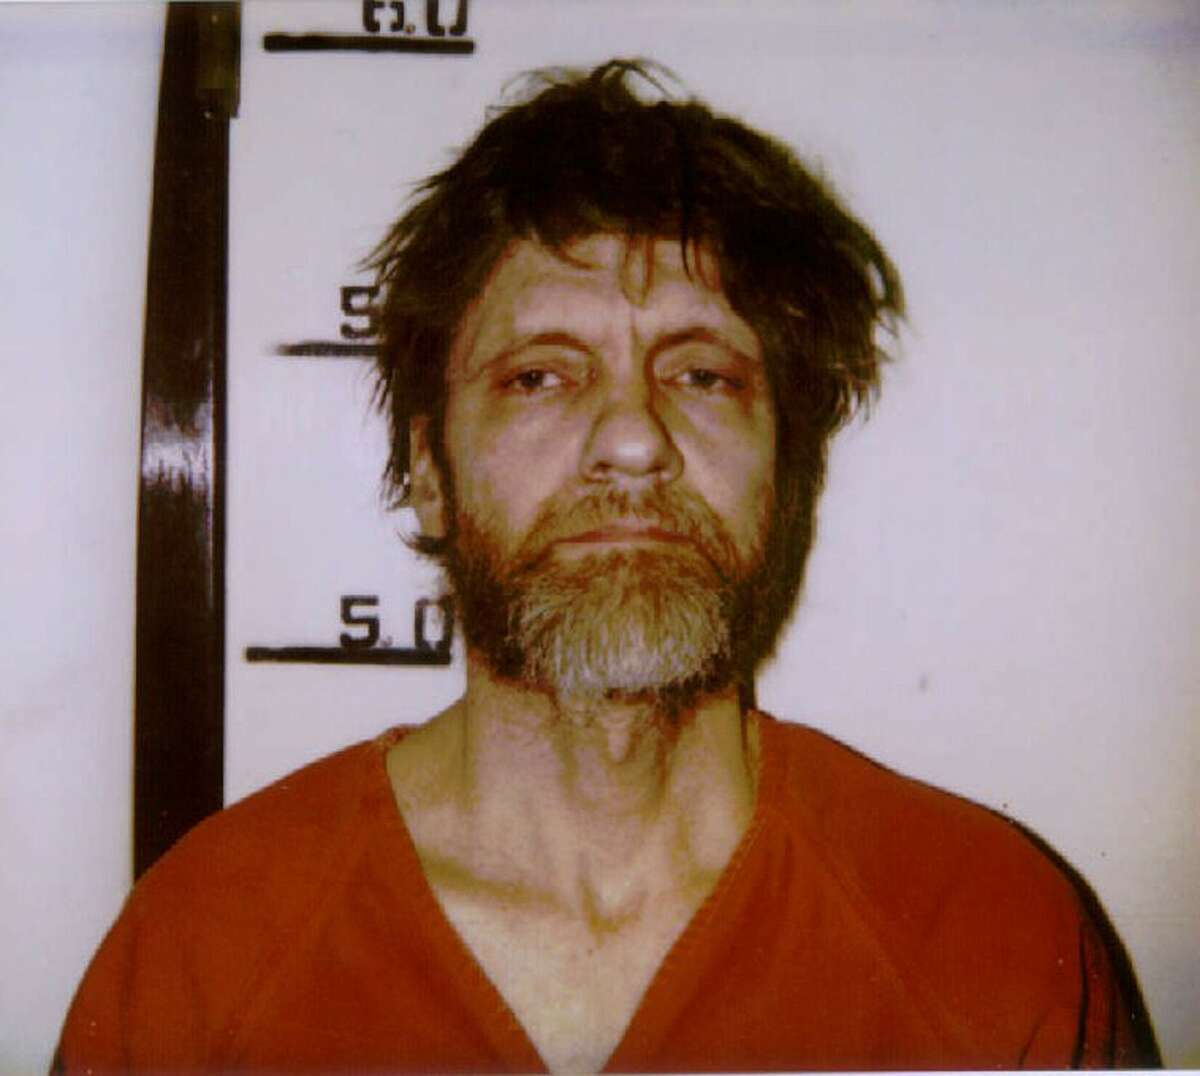 Unabomber suspect Theodore Kaczynski is shown in his booking mug at the Lewis and Clark County Jail in Helena, Mont. in this April 3, 1996 file photo. Kaczynski has agreed to plead guilty in return for a sentence of life in prison without parole, federal officials said Thursday, Jan. 22, 1998. (AP Photo/ho)